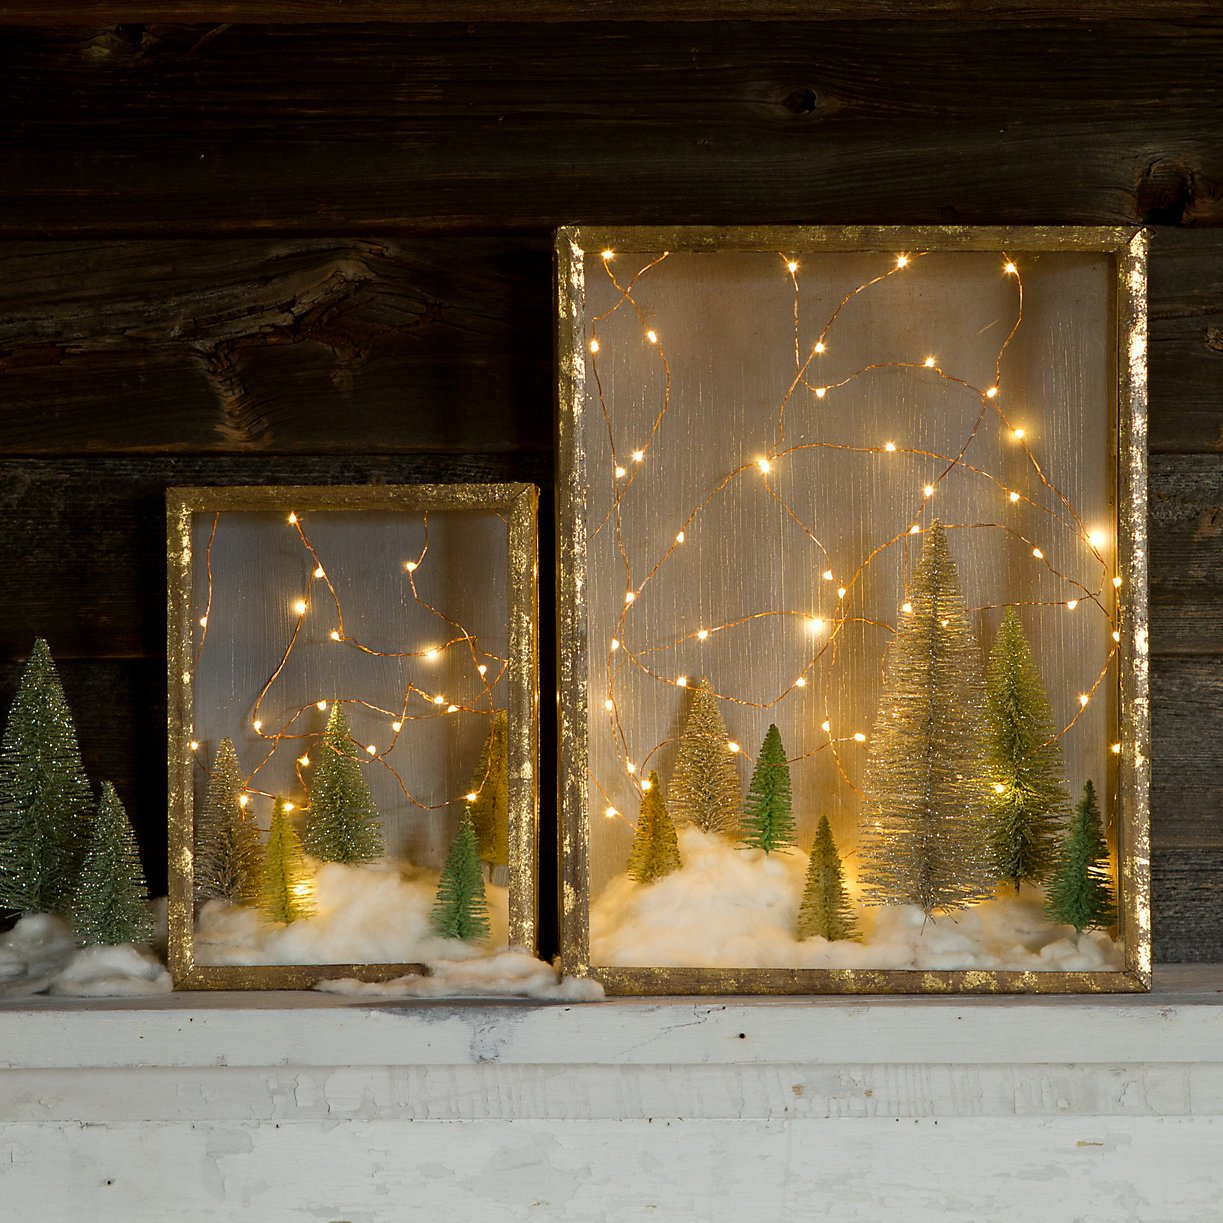 Draw attention to tabletop holiday decor by draping it with lights.